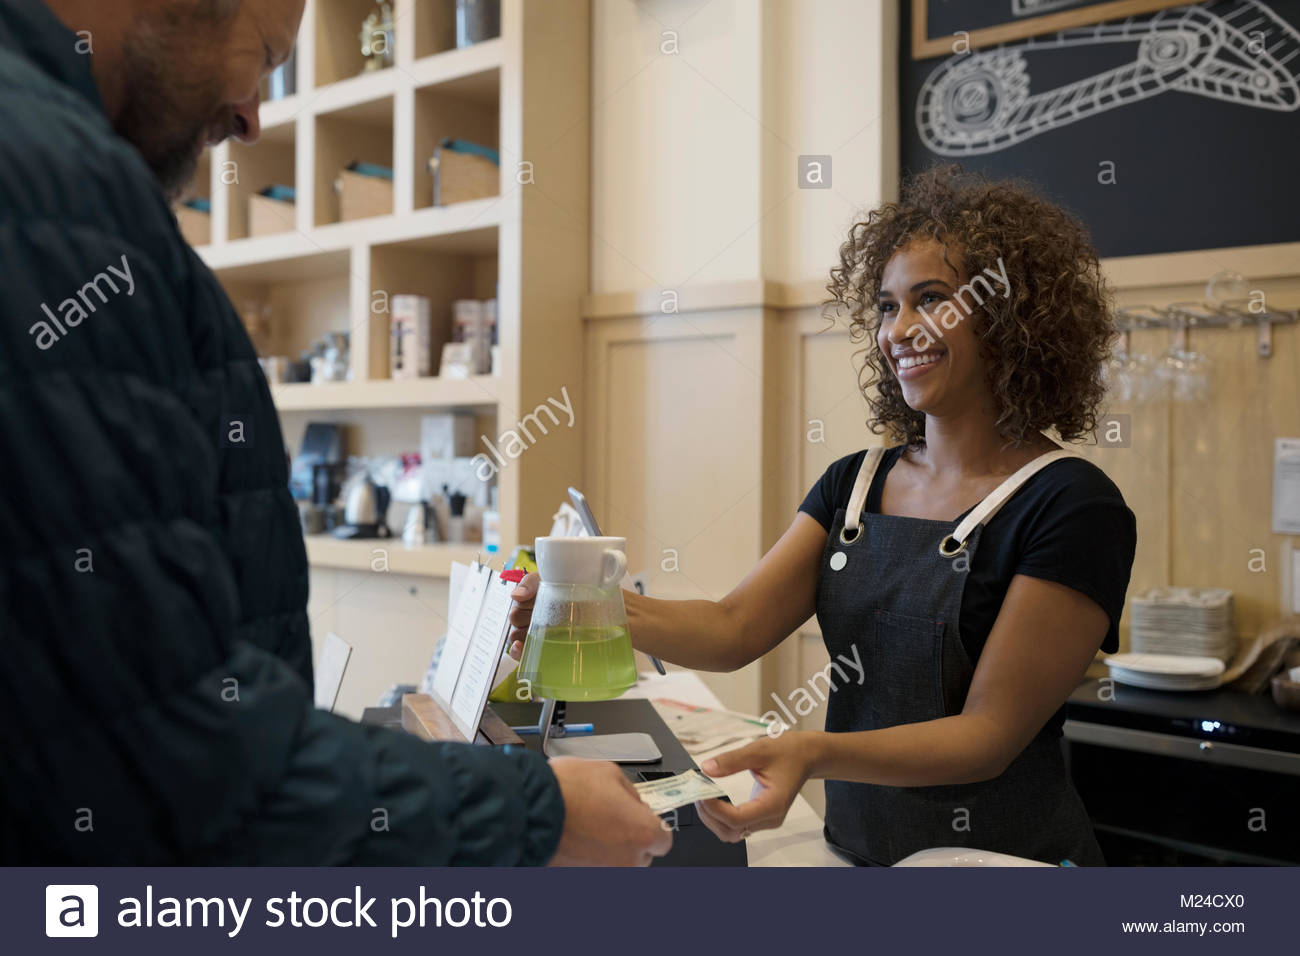 Smiling female barista taking money from male customer in cafe - Stock Image